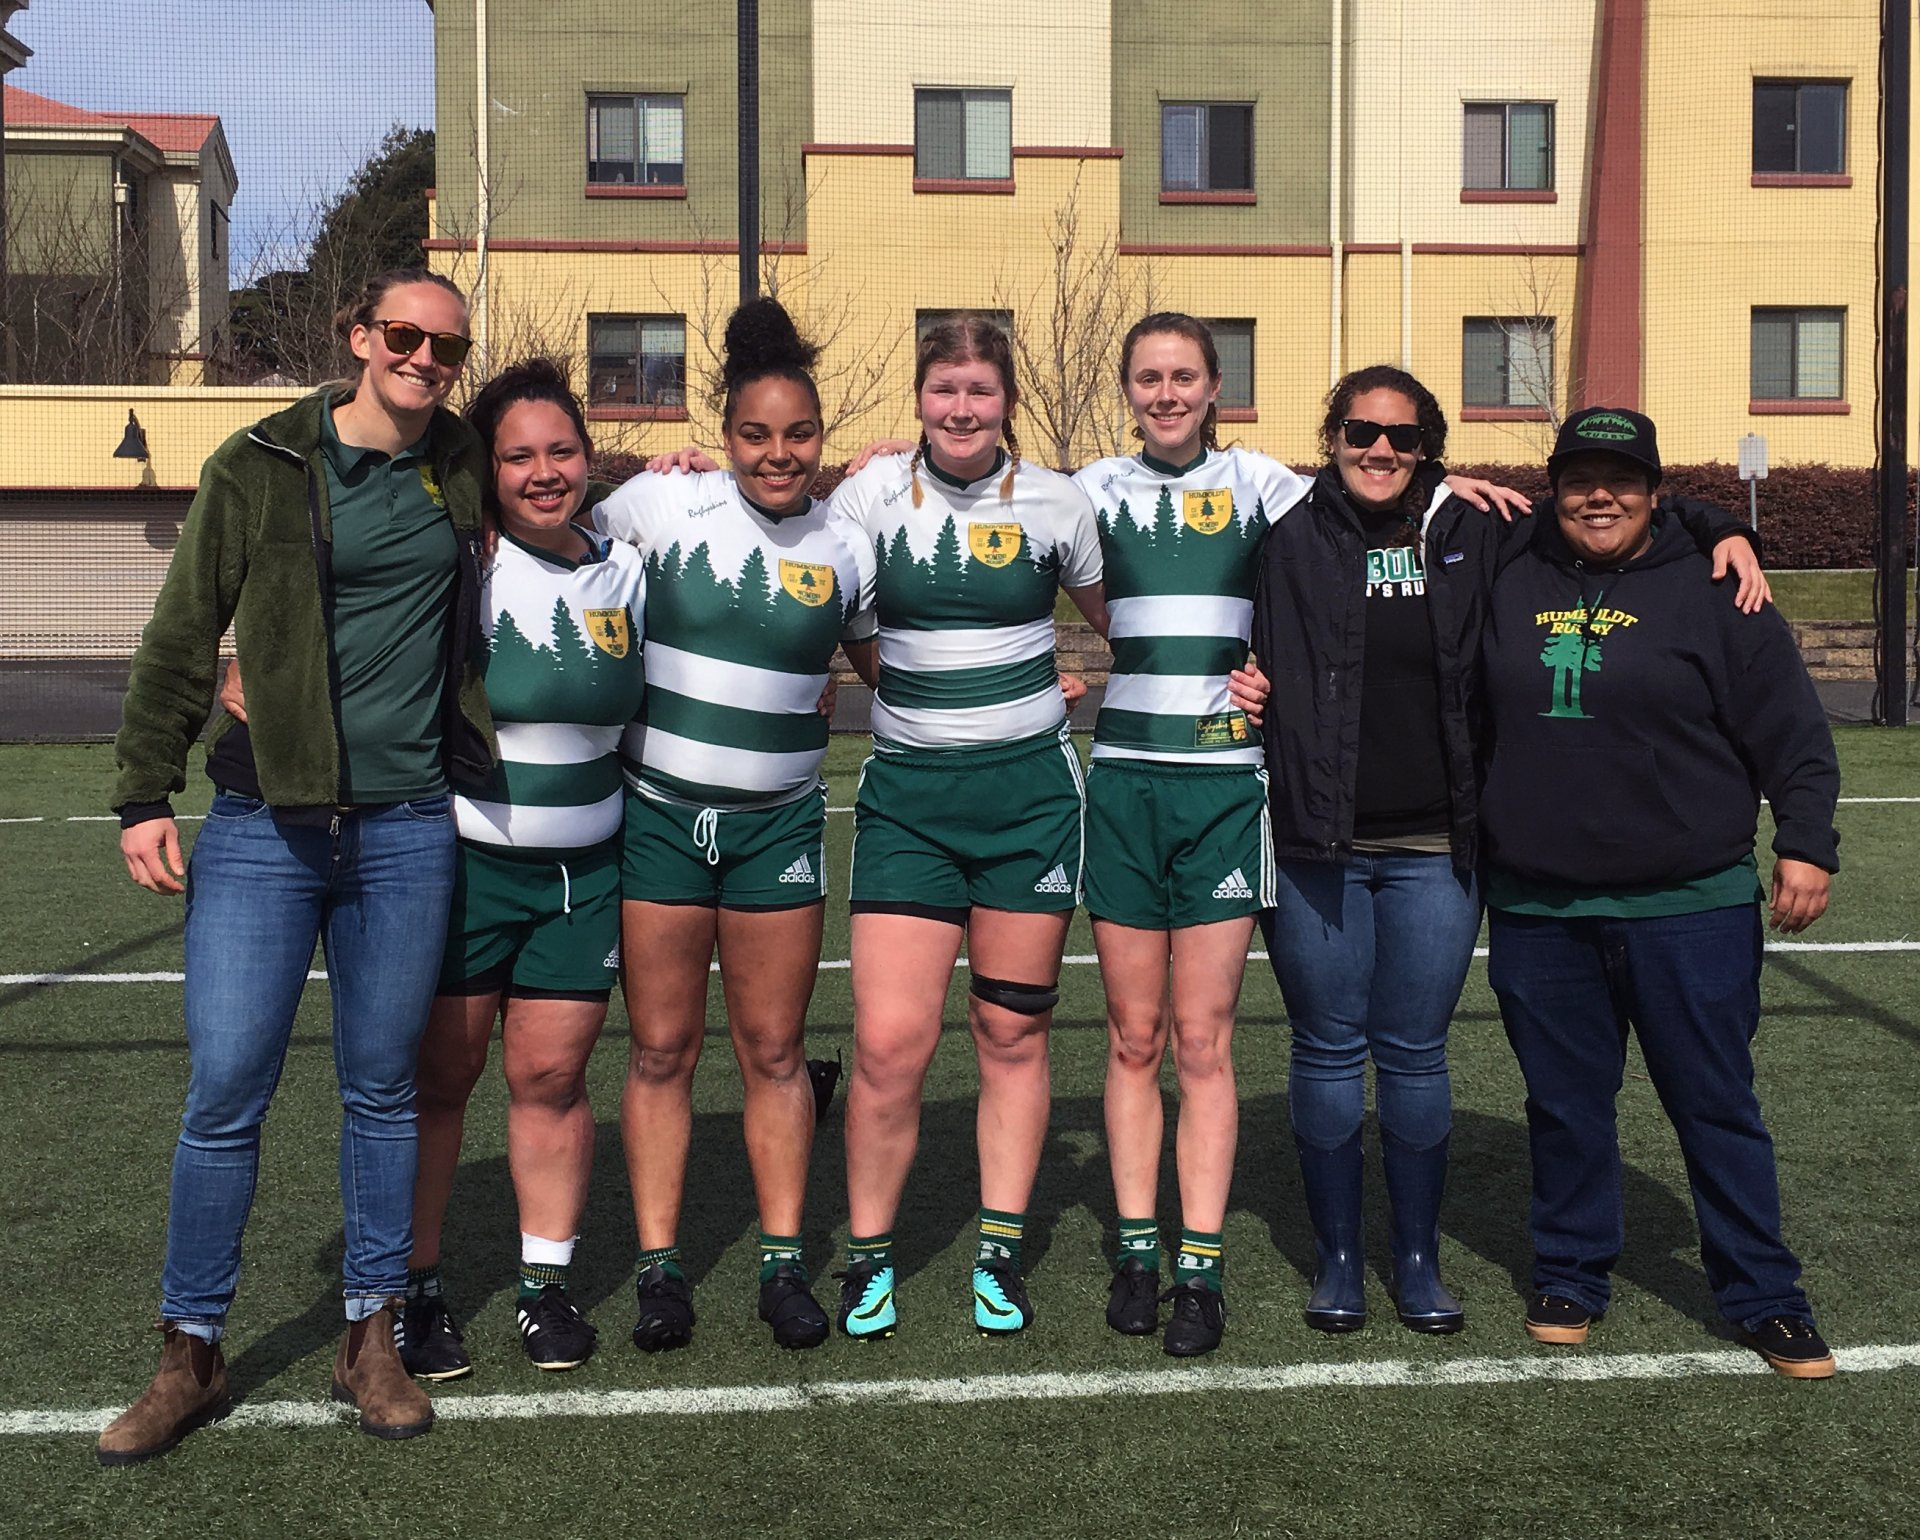 Seniors and coaches pose after their victory. Meredith Conrad-Forrest (left), Kayla Maulson, Lila Bell, Tori Laidlaw, Tristyn Berman, Krista Miller (forwards coach) and Loni Carrera (backs coach) at College Creek Field on March 3. Photo courtesy of Kiana Hargreaves.